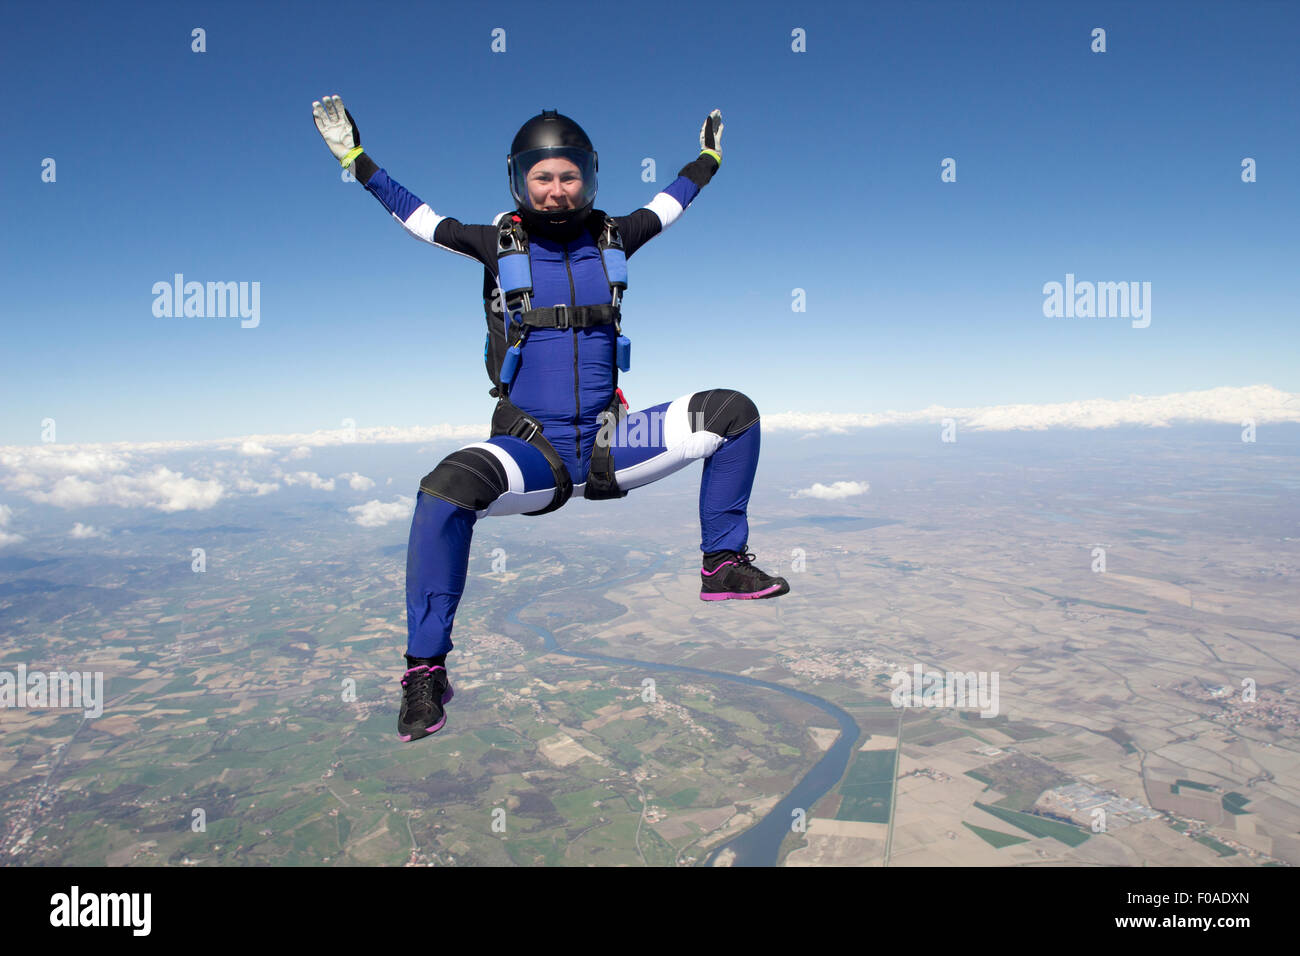 Freeflying skydiver in blue sky - Stock Image